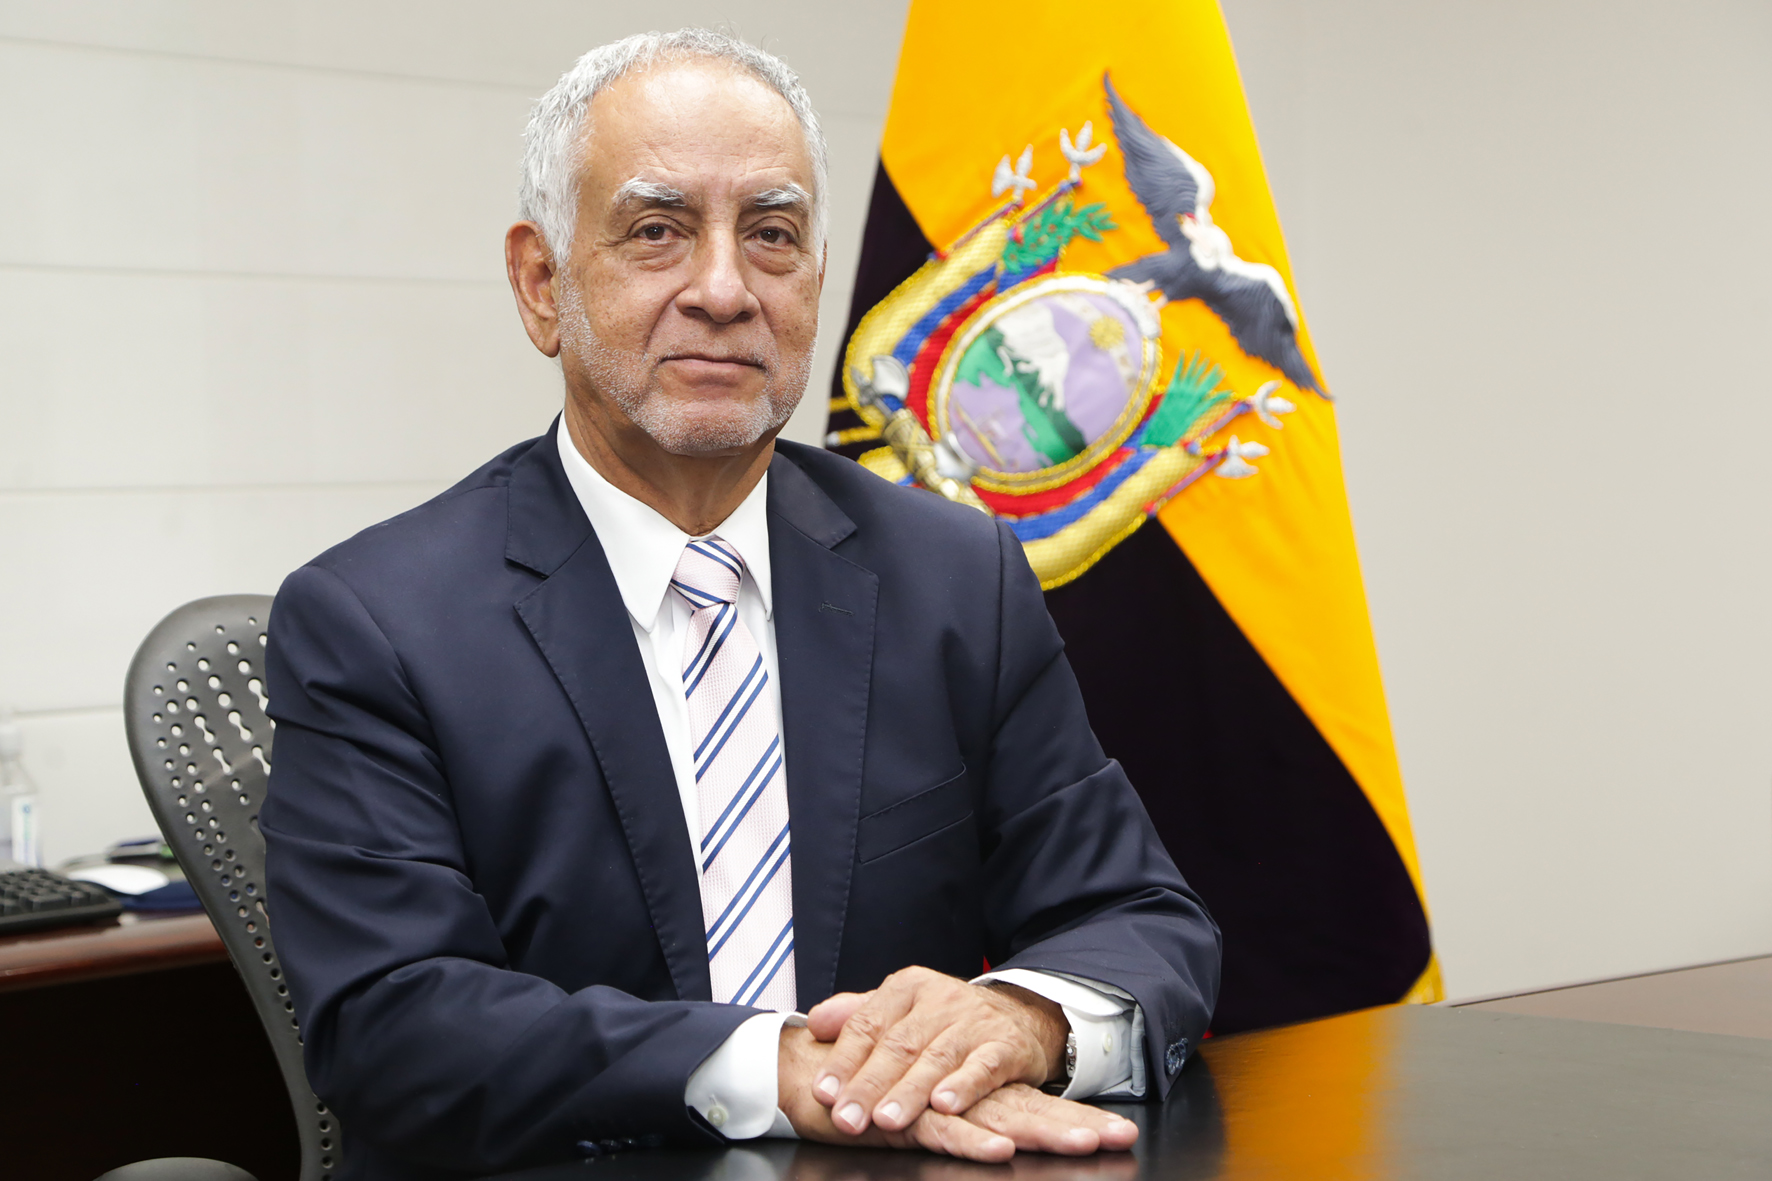 Interview with Carlos Pérez, Ecuador's Minister of Energy and Non-Renewable Resources